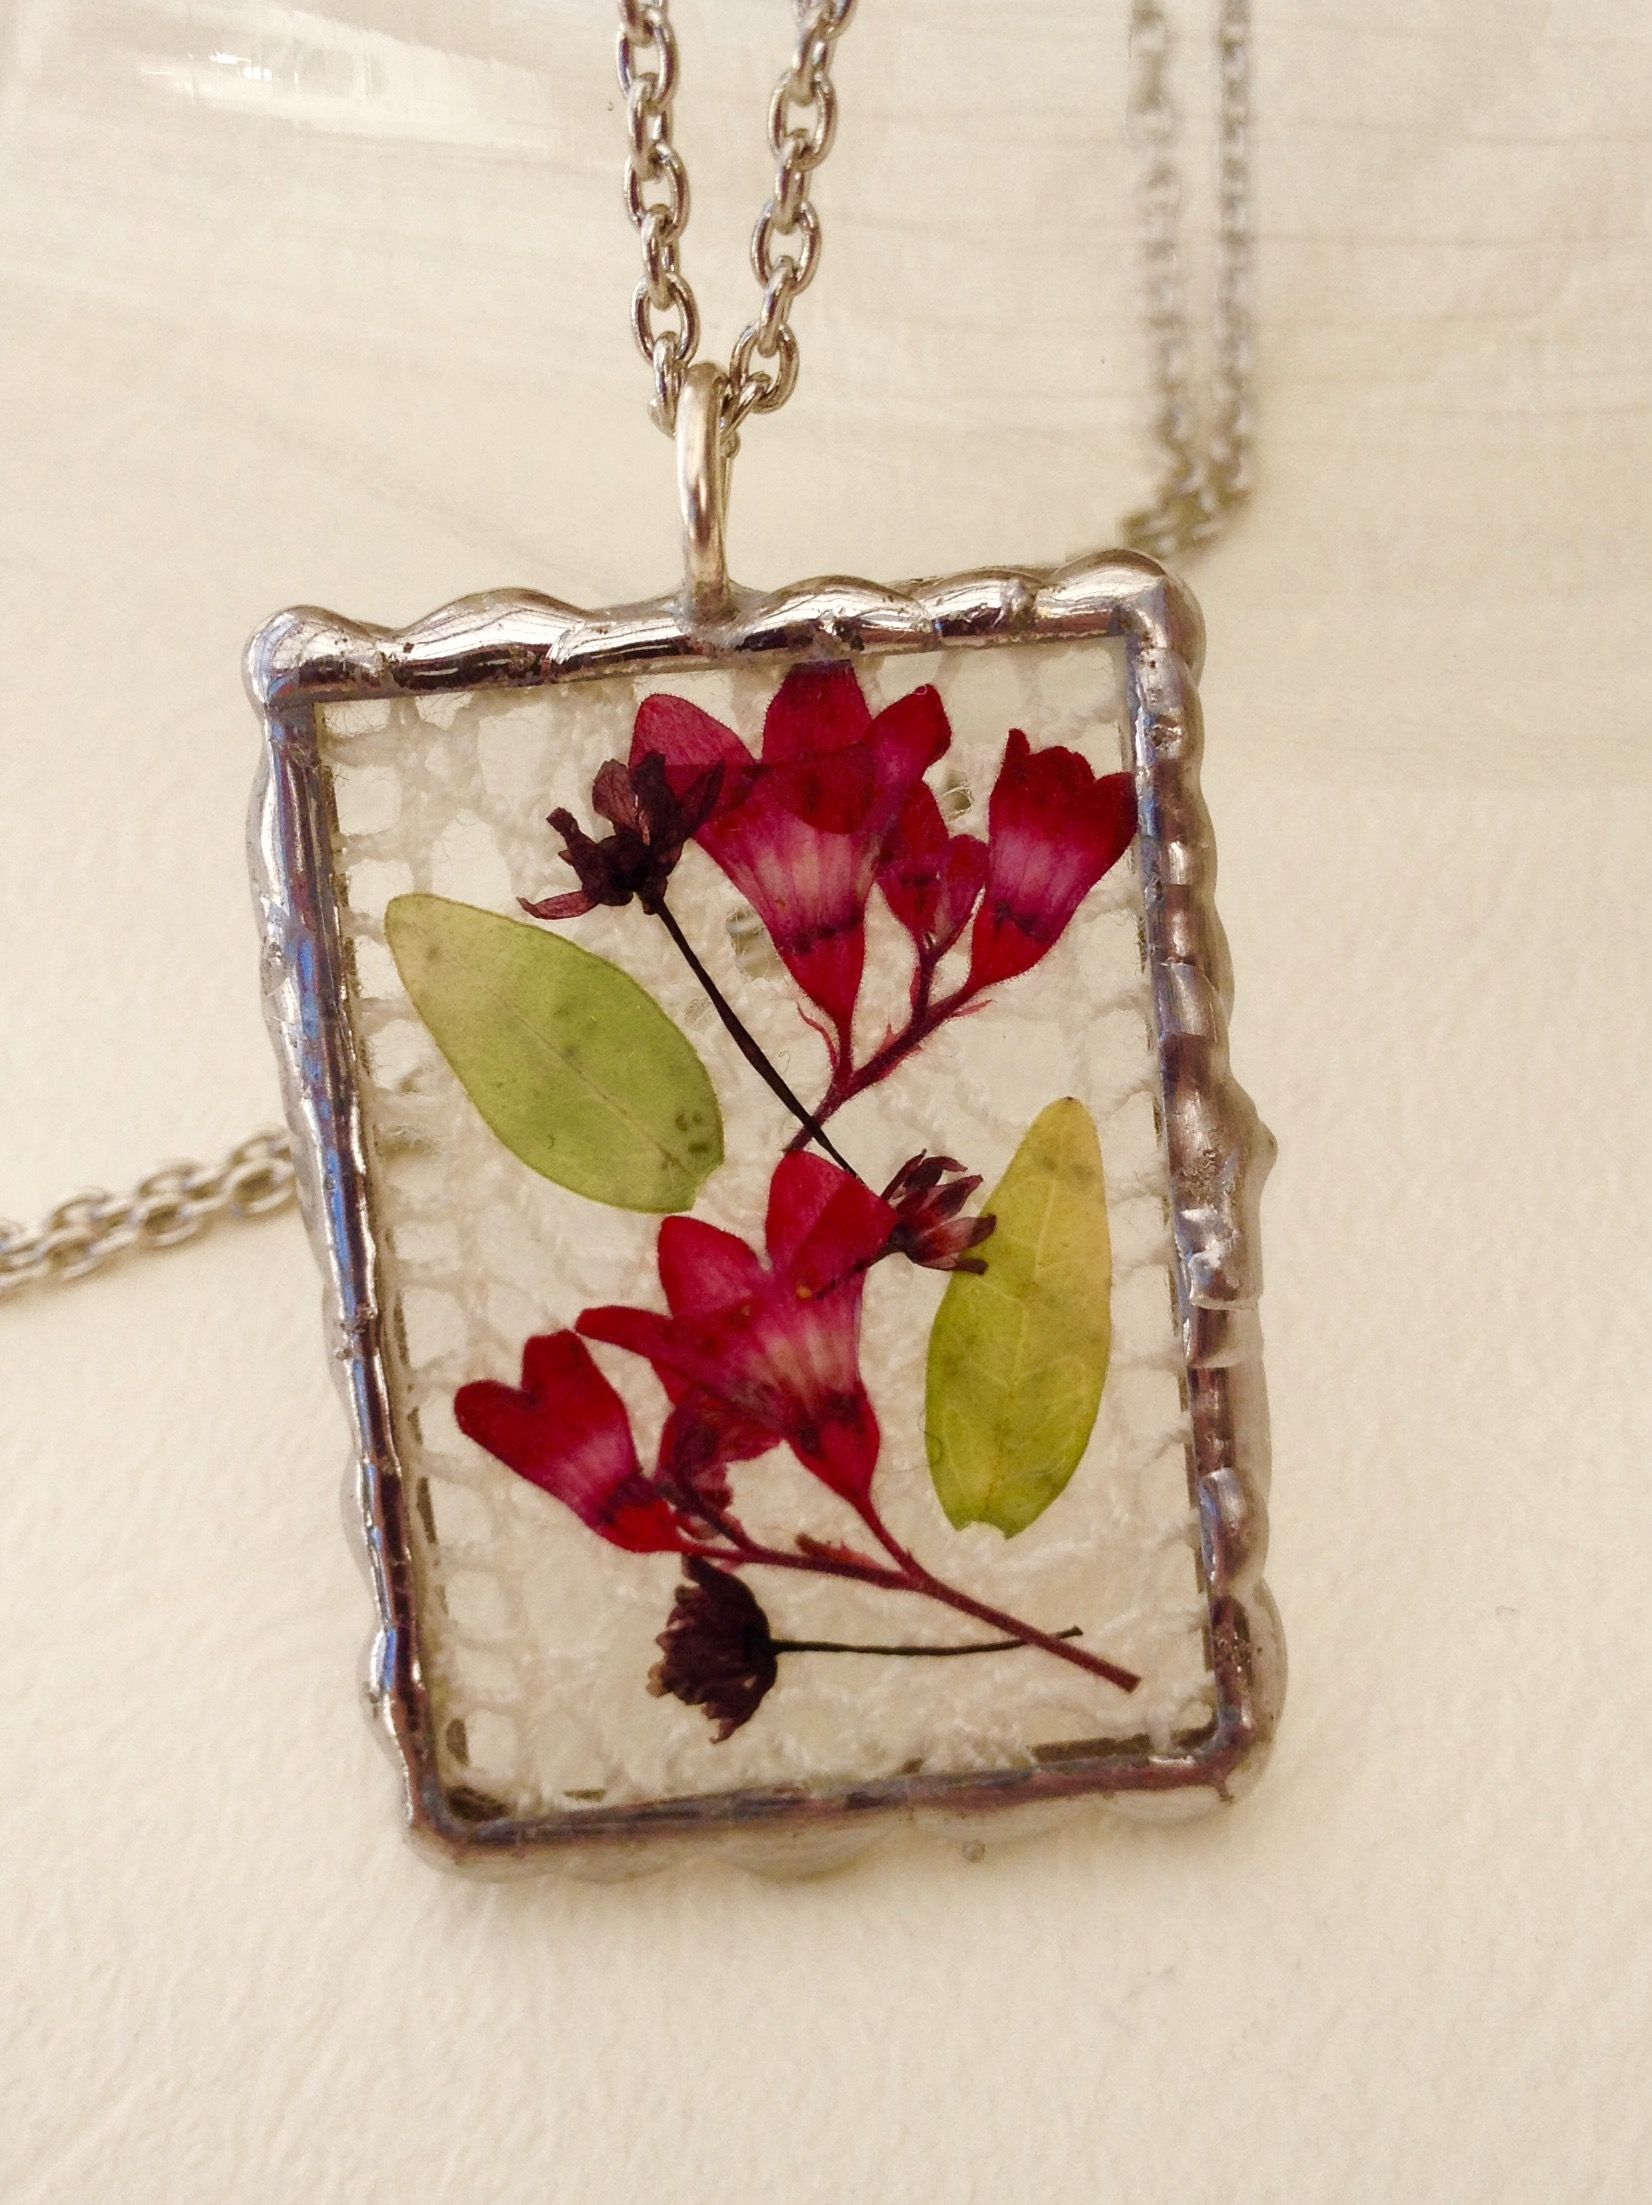 Soldered glass pendant handmade lace and pressed flowers colors soldered glass pendant handmade lace and pressed flowers aloadofball Images